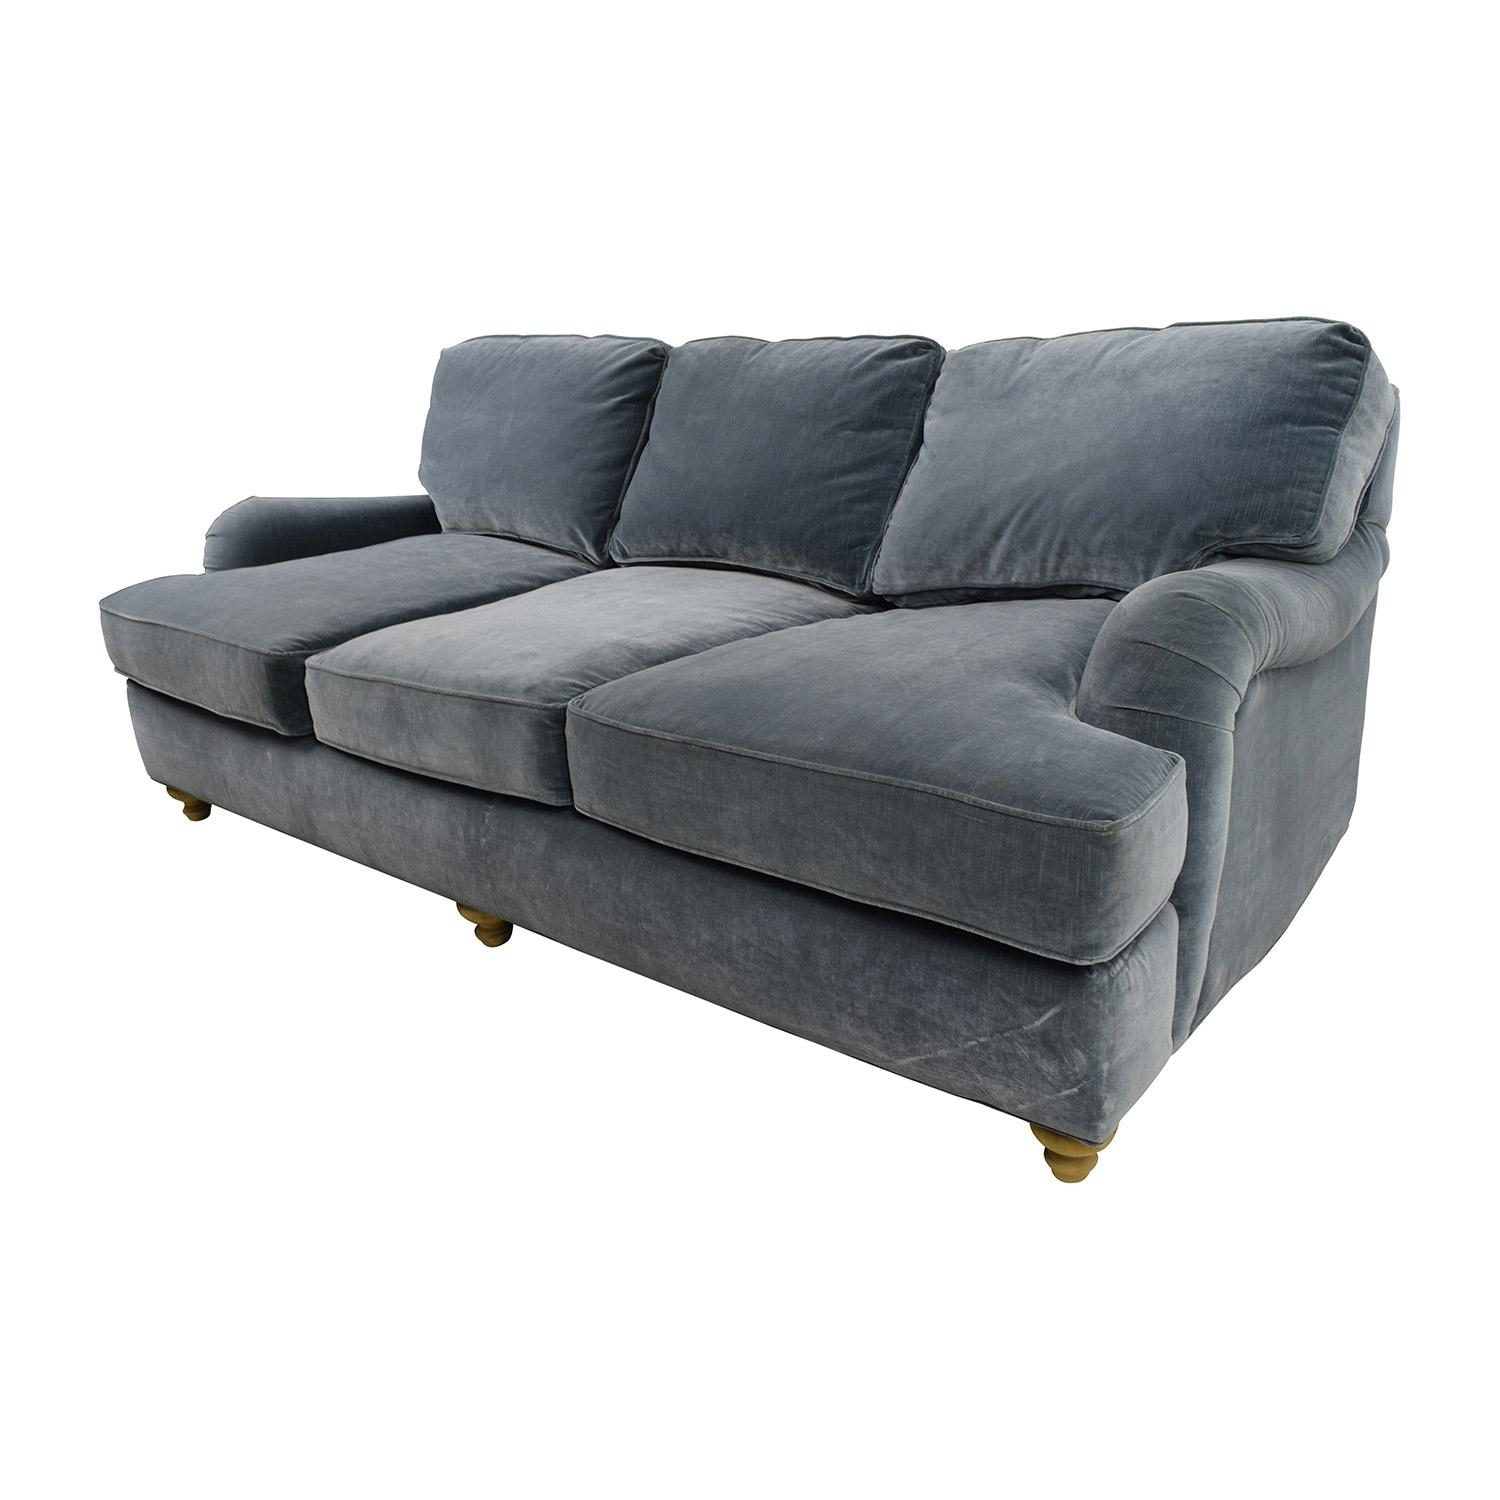 79% Off - Restoration Hardware Restoration Hardware English Roll inside Classic English Sofas